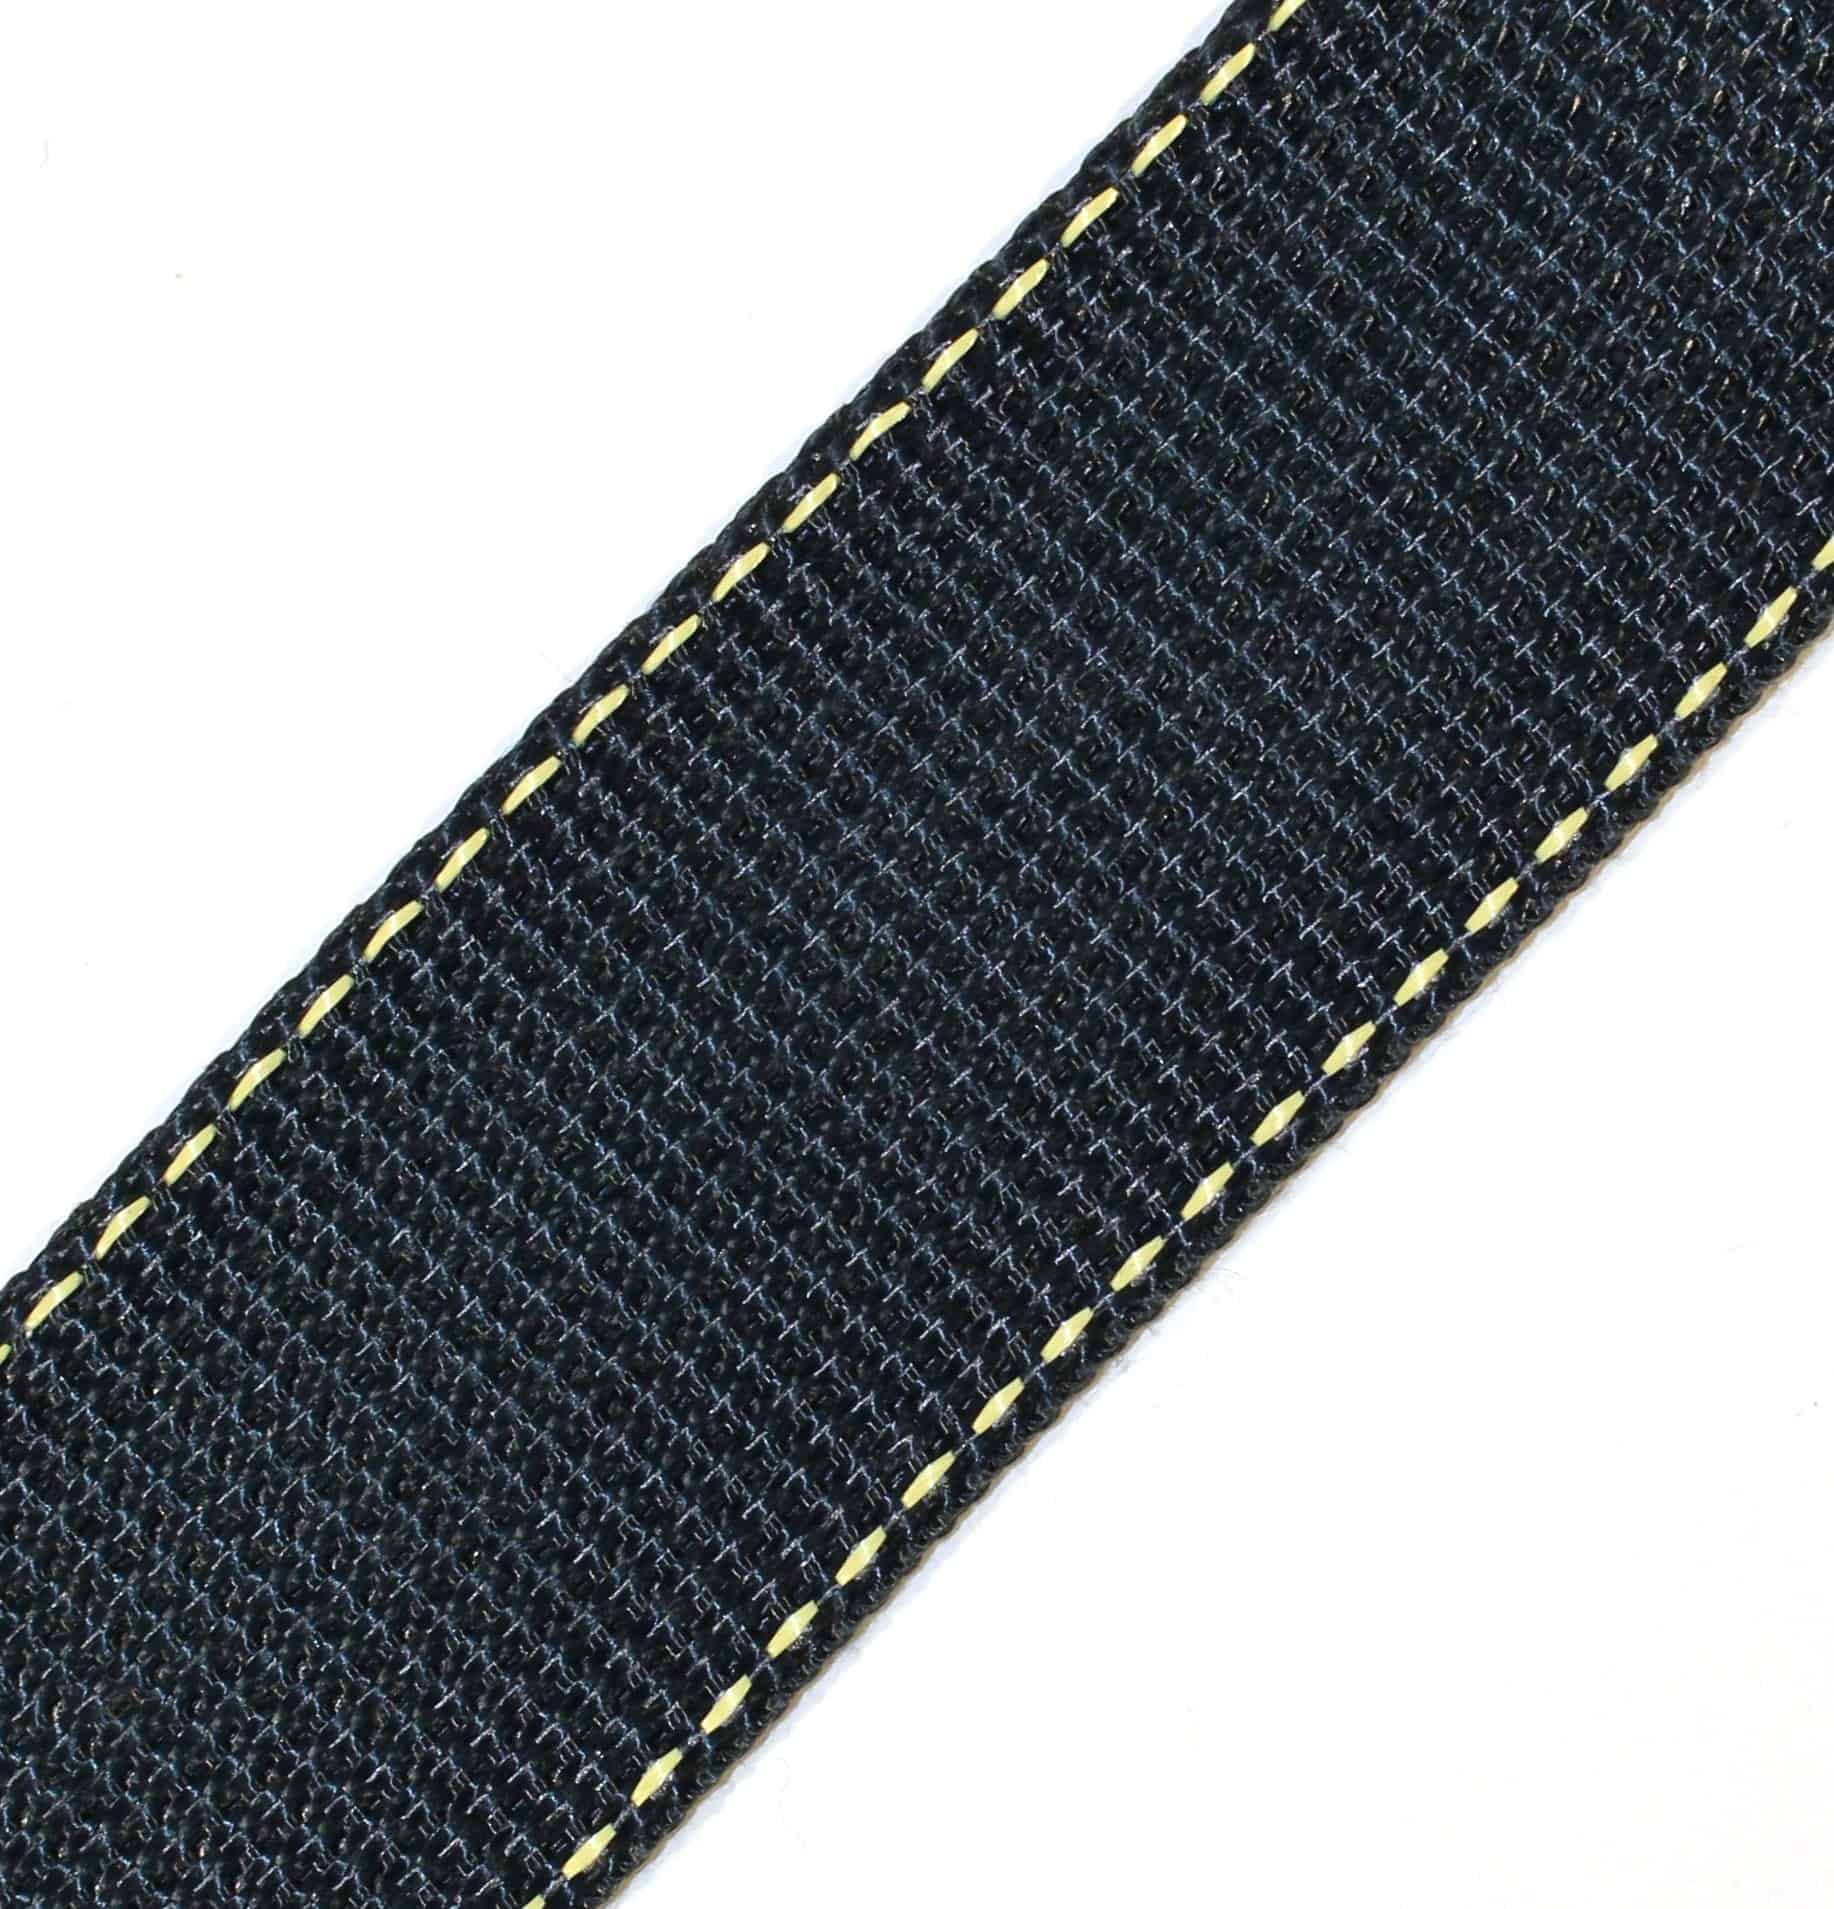 1-3/4″ Black Kevlar® Webbing with Natural Stripes